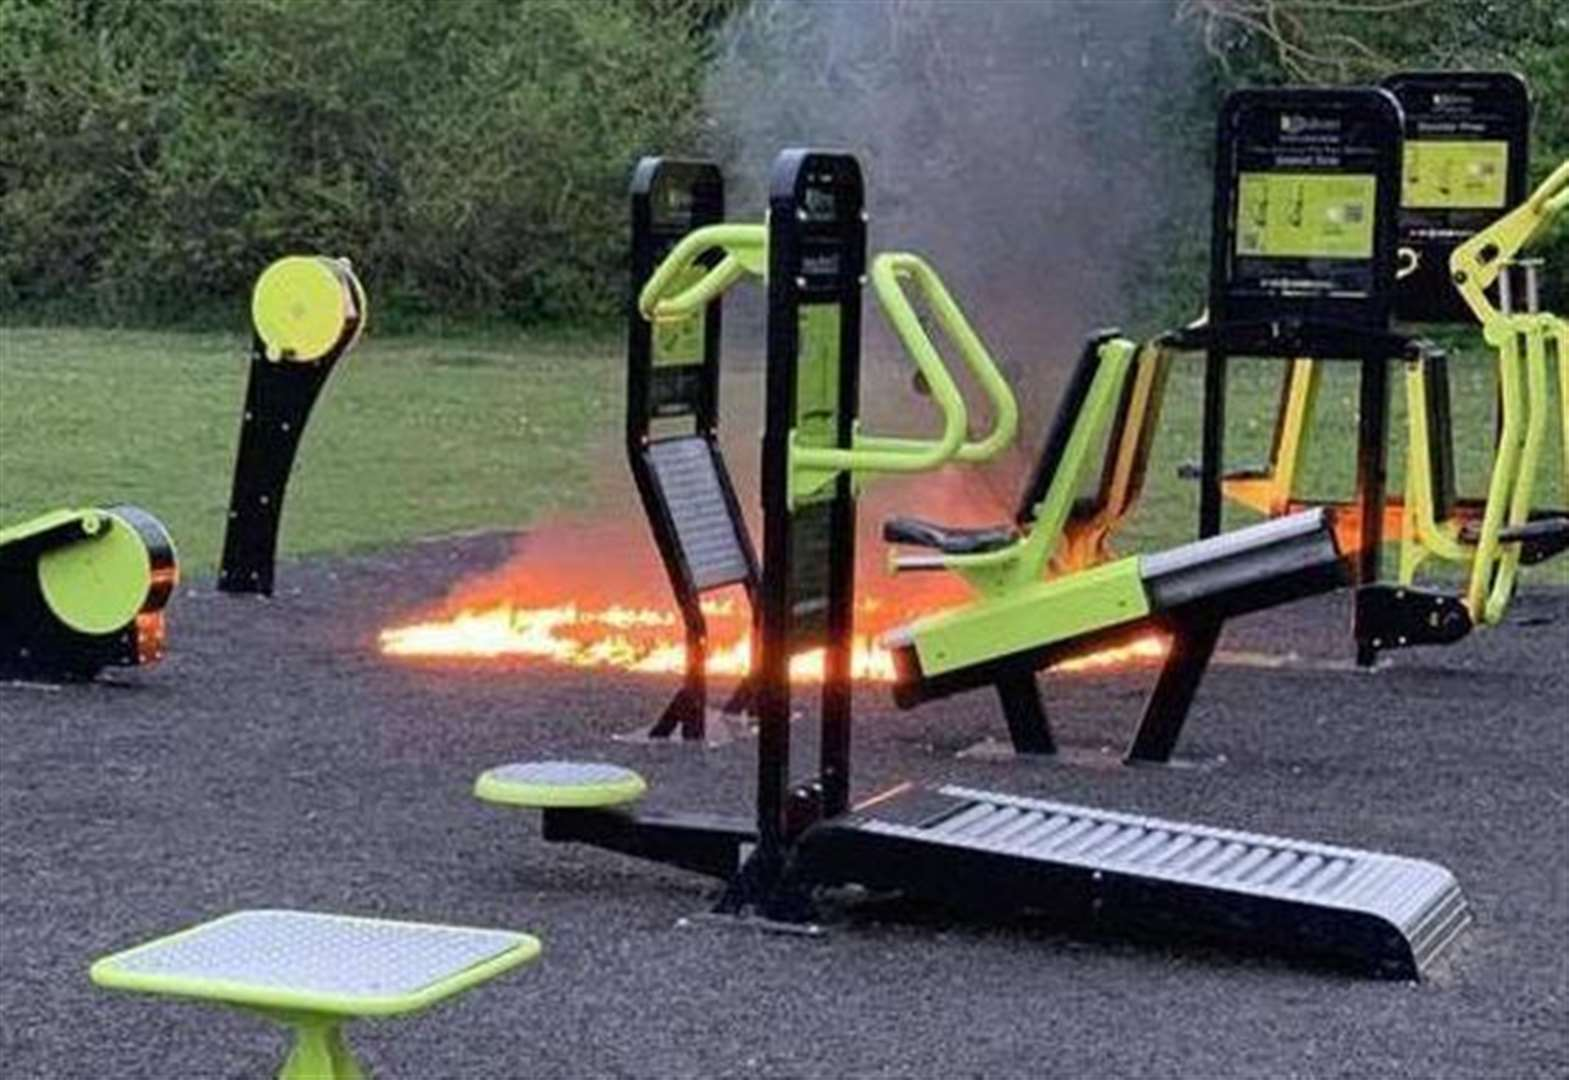 'Arsonists set fire to outdoor gym'